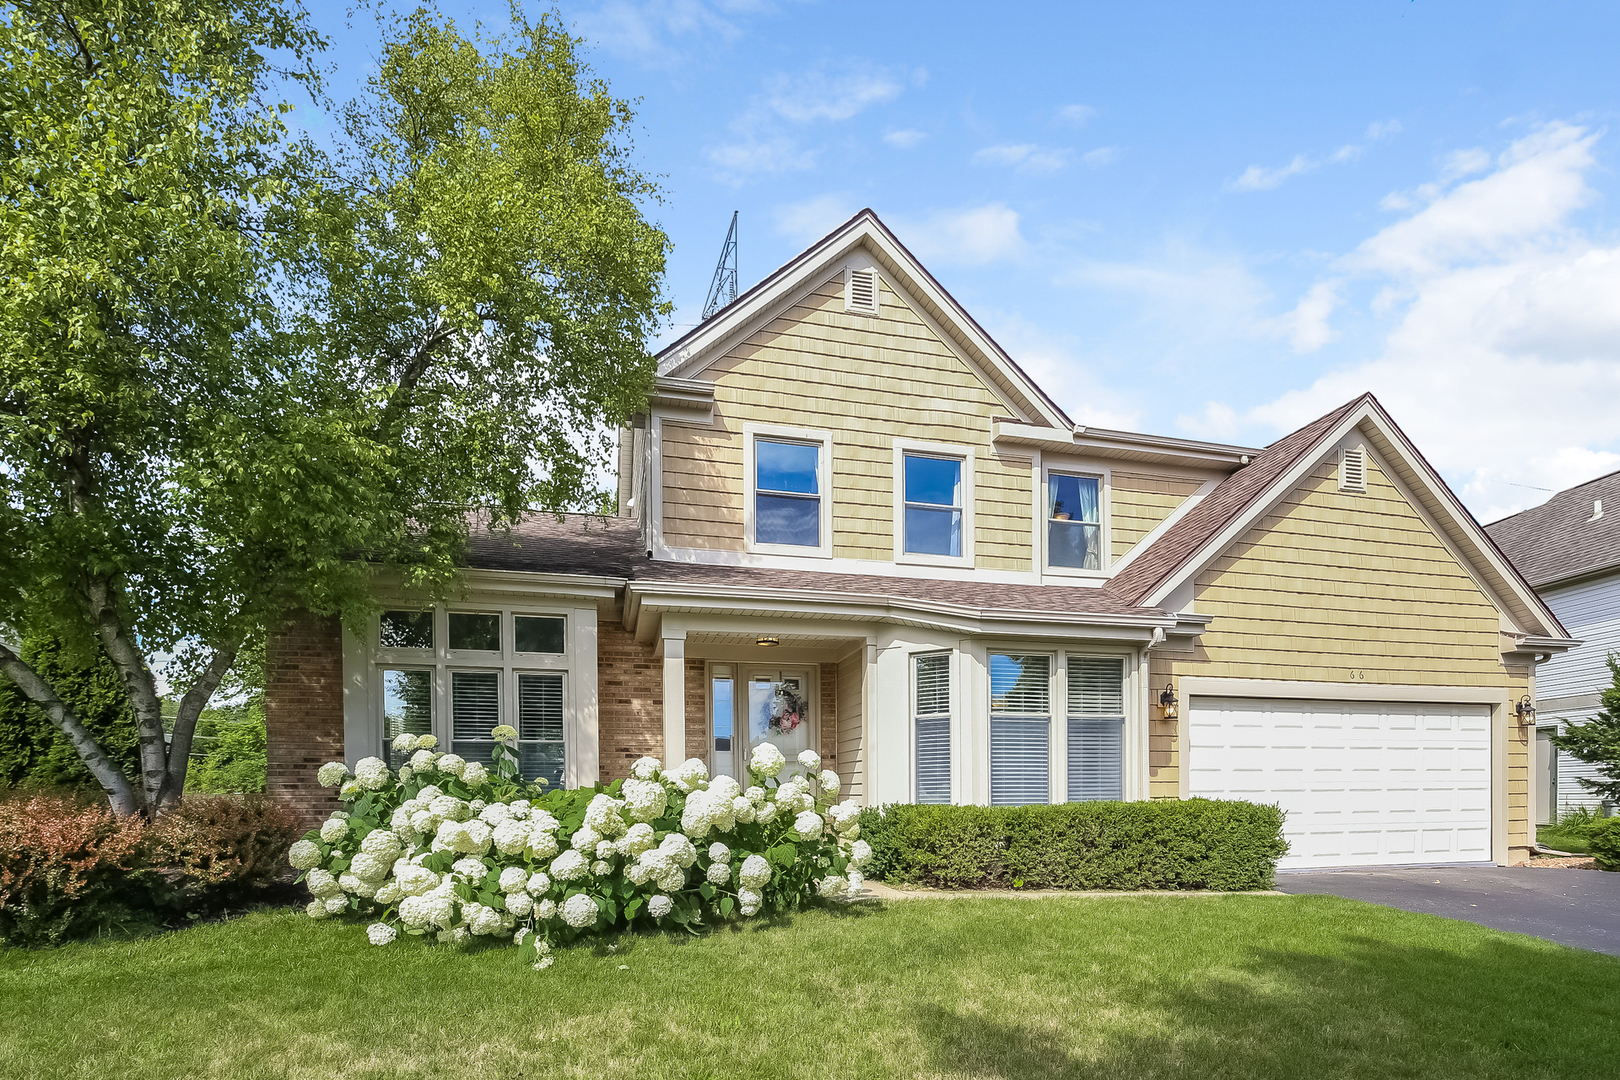 66 Copperwood Drive, Buffalo Grove, Illinois 60089